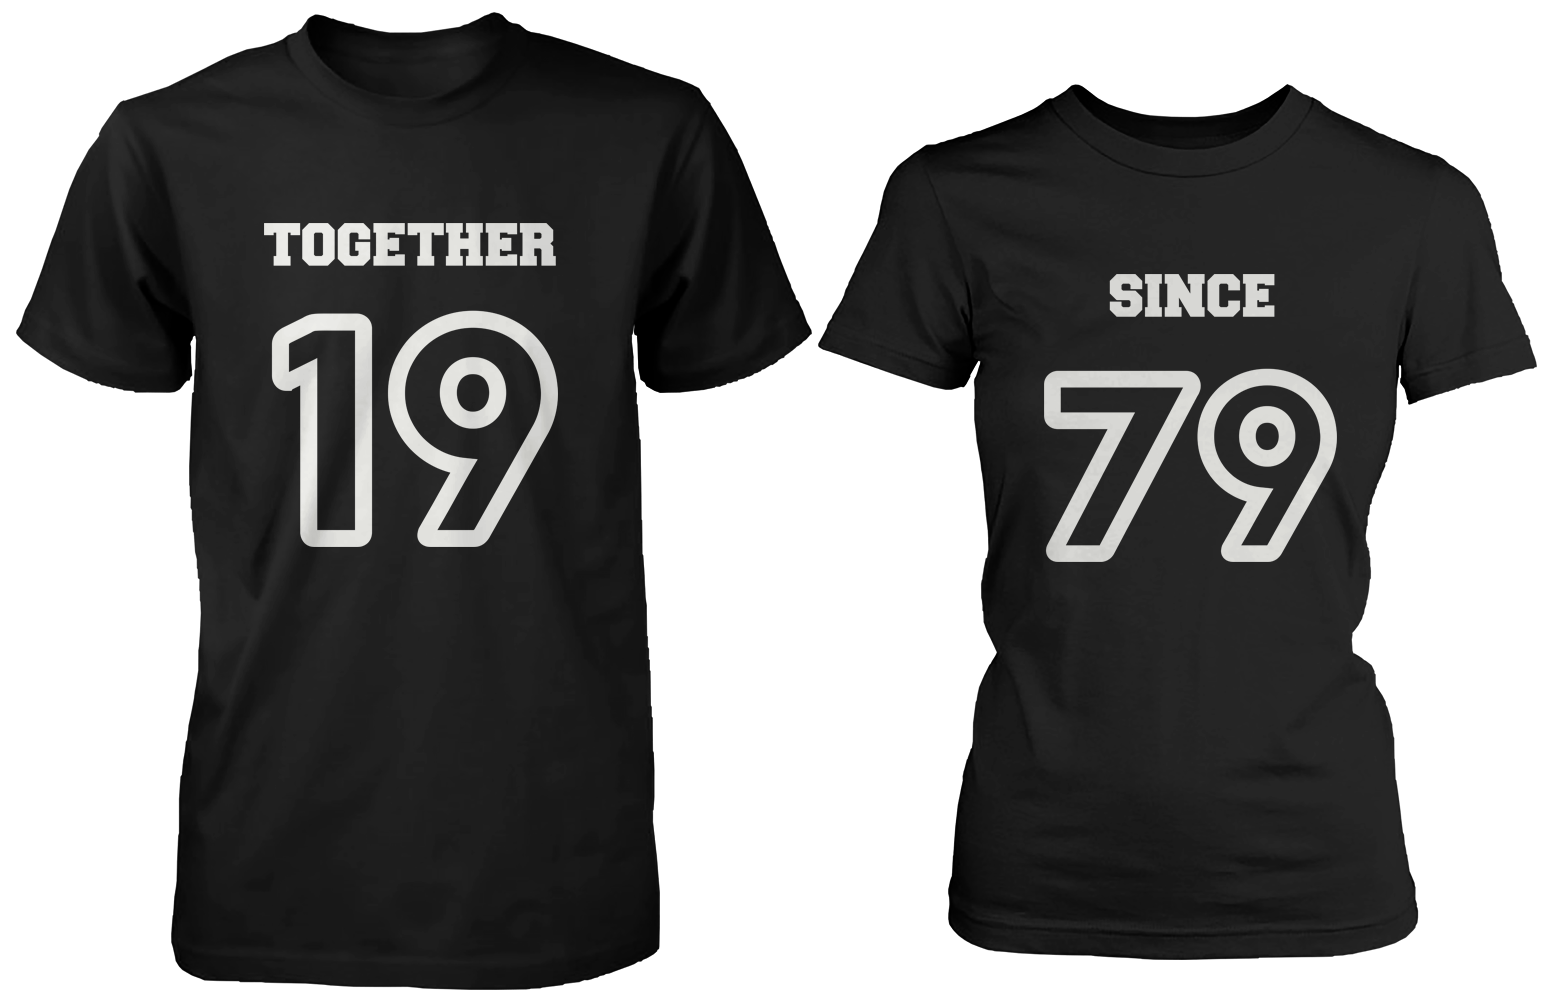 776dc91d1e ... Matching Couple Shirts (Set). Customized Shirts, Personalized Gifts -  Wedding gift ideas, Anniversary gifts, Honeymoon outfit ideas, Bridal  Shower gifts ...